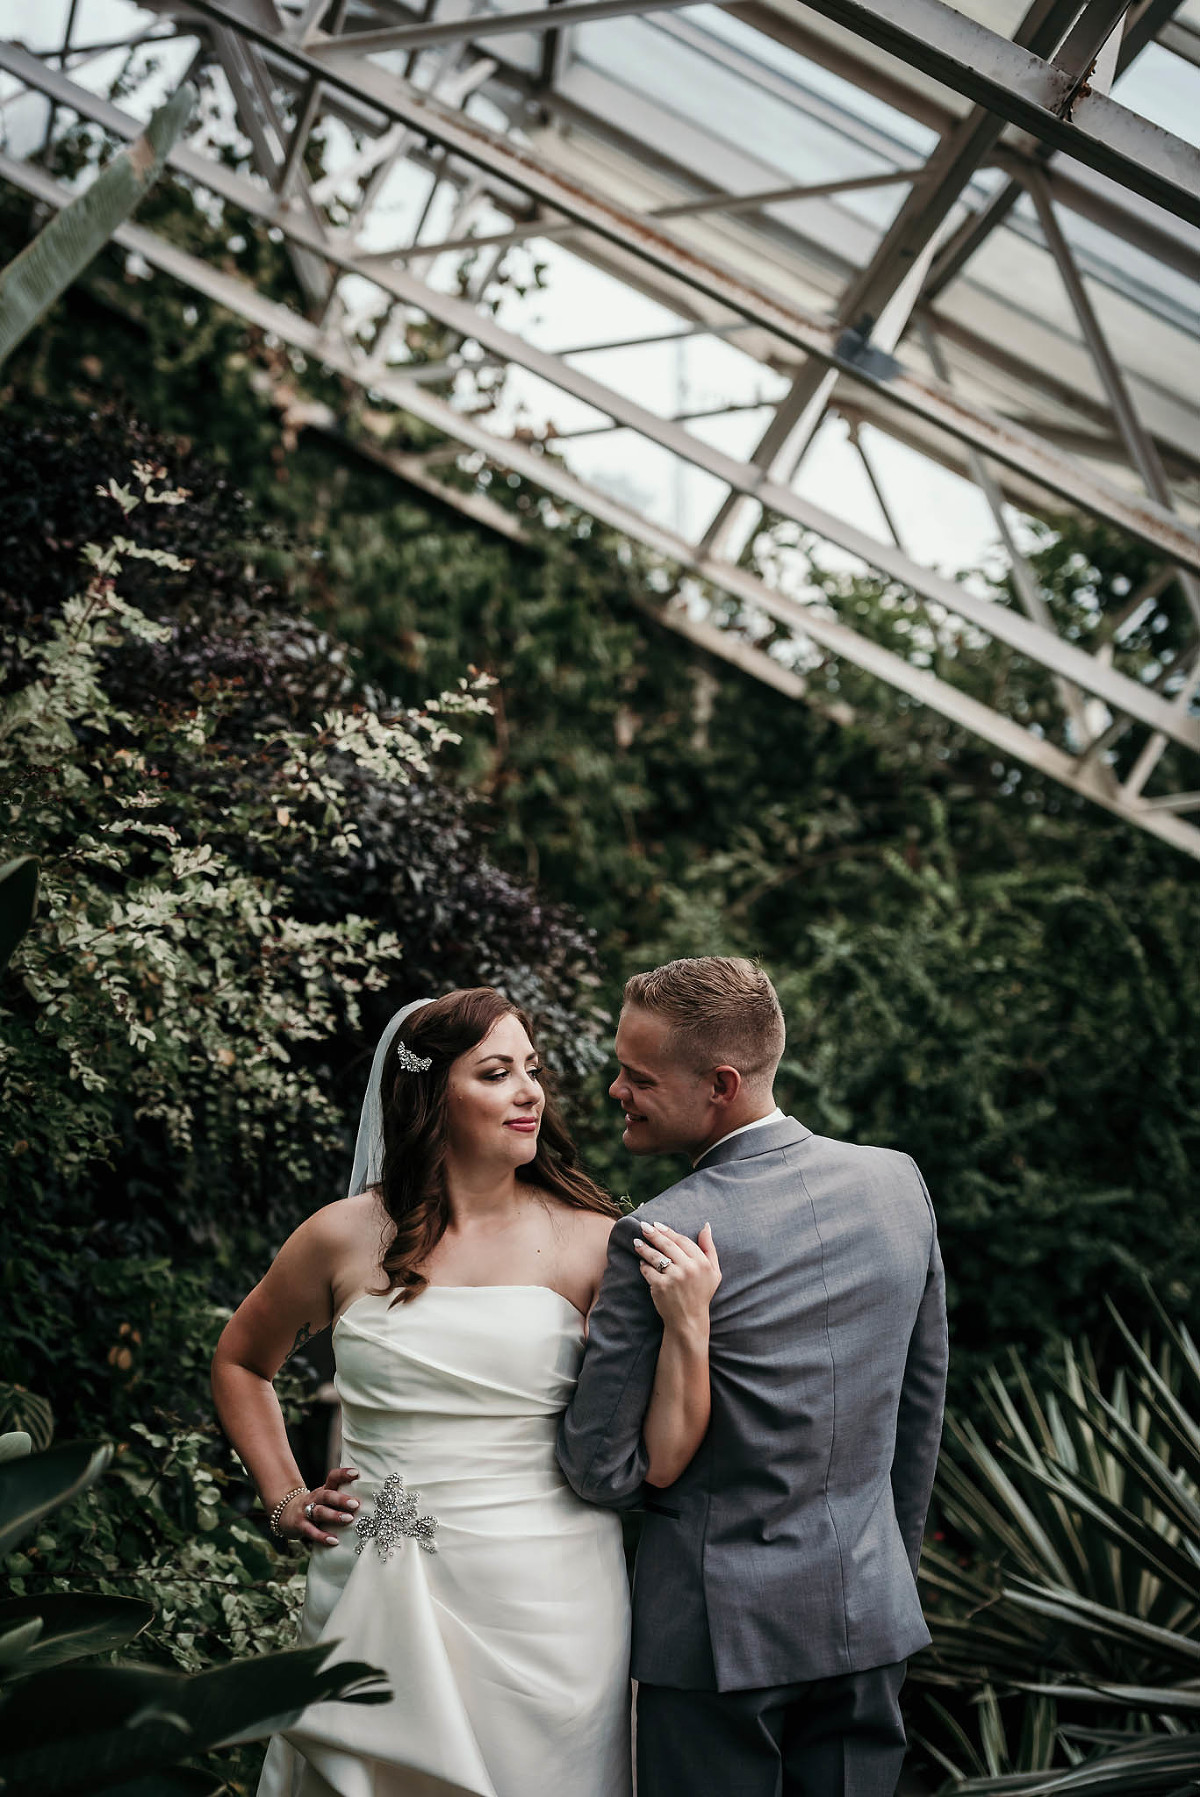 Bride and groom smiling at each other in jungle garden at Art Deco inspired summer wedding at the Foellinger-Freimann Botanical Conservatory in Fort Wayne, Indiana